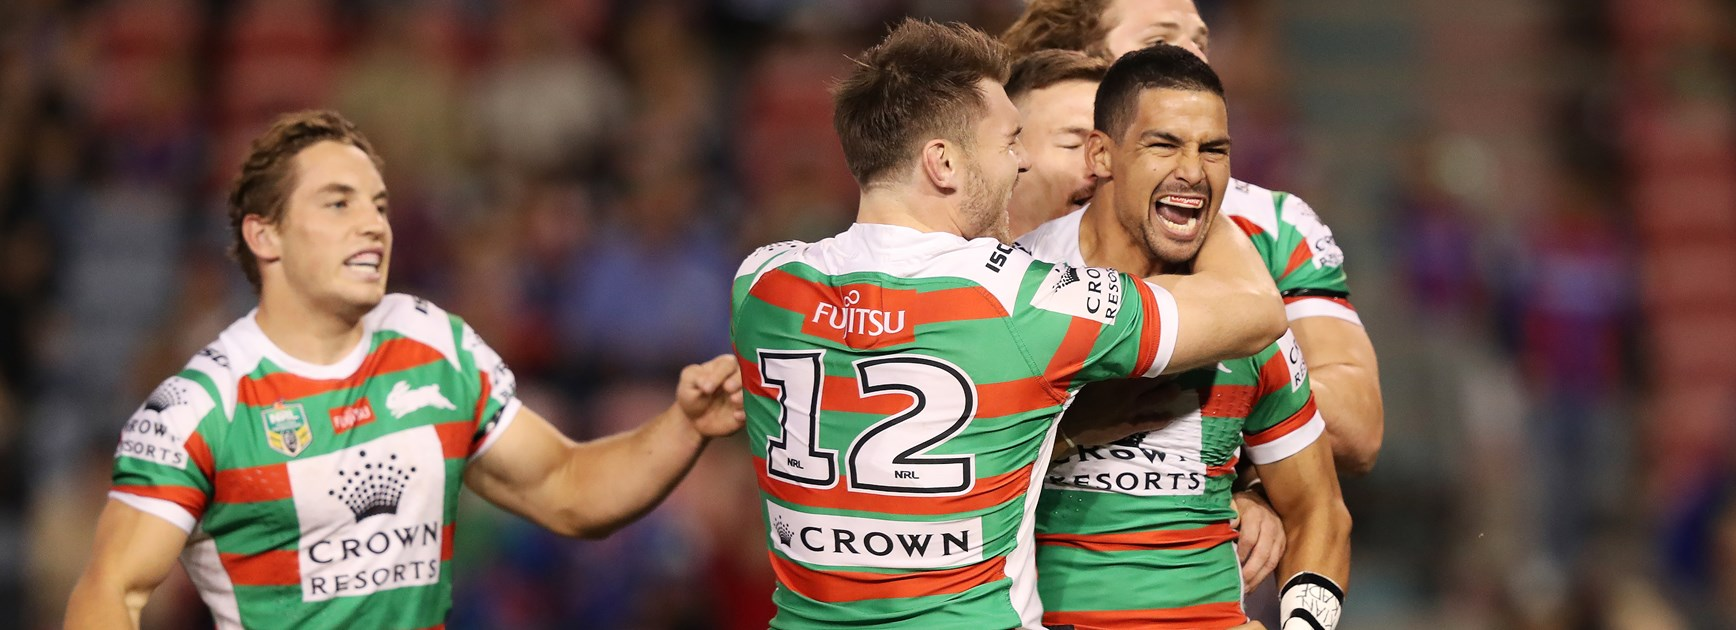 Soward's Power Rankings: Rabbitohs on the move